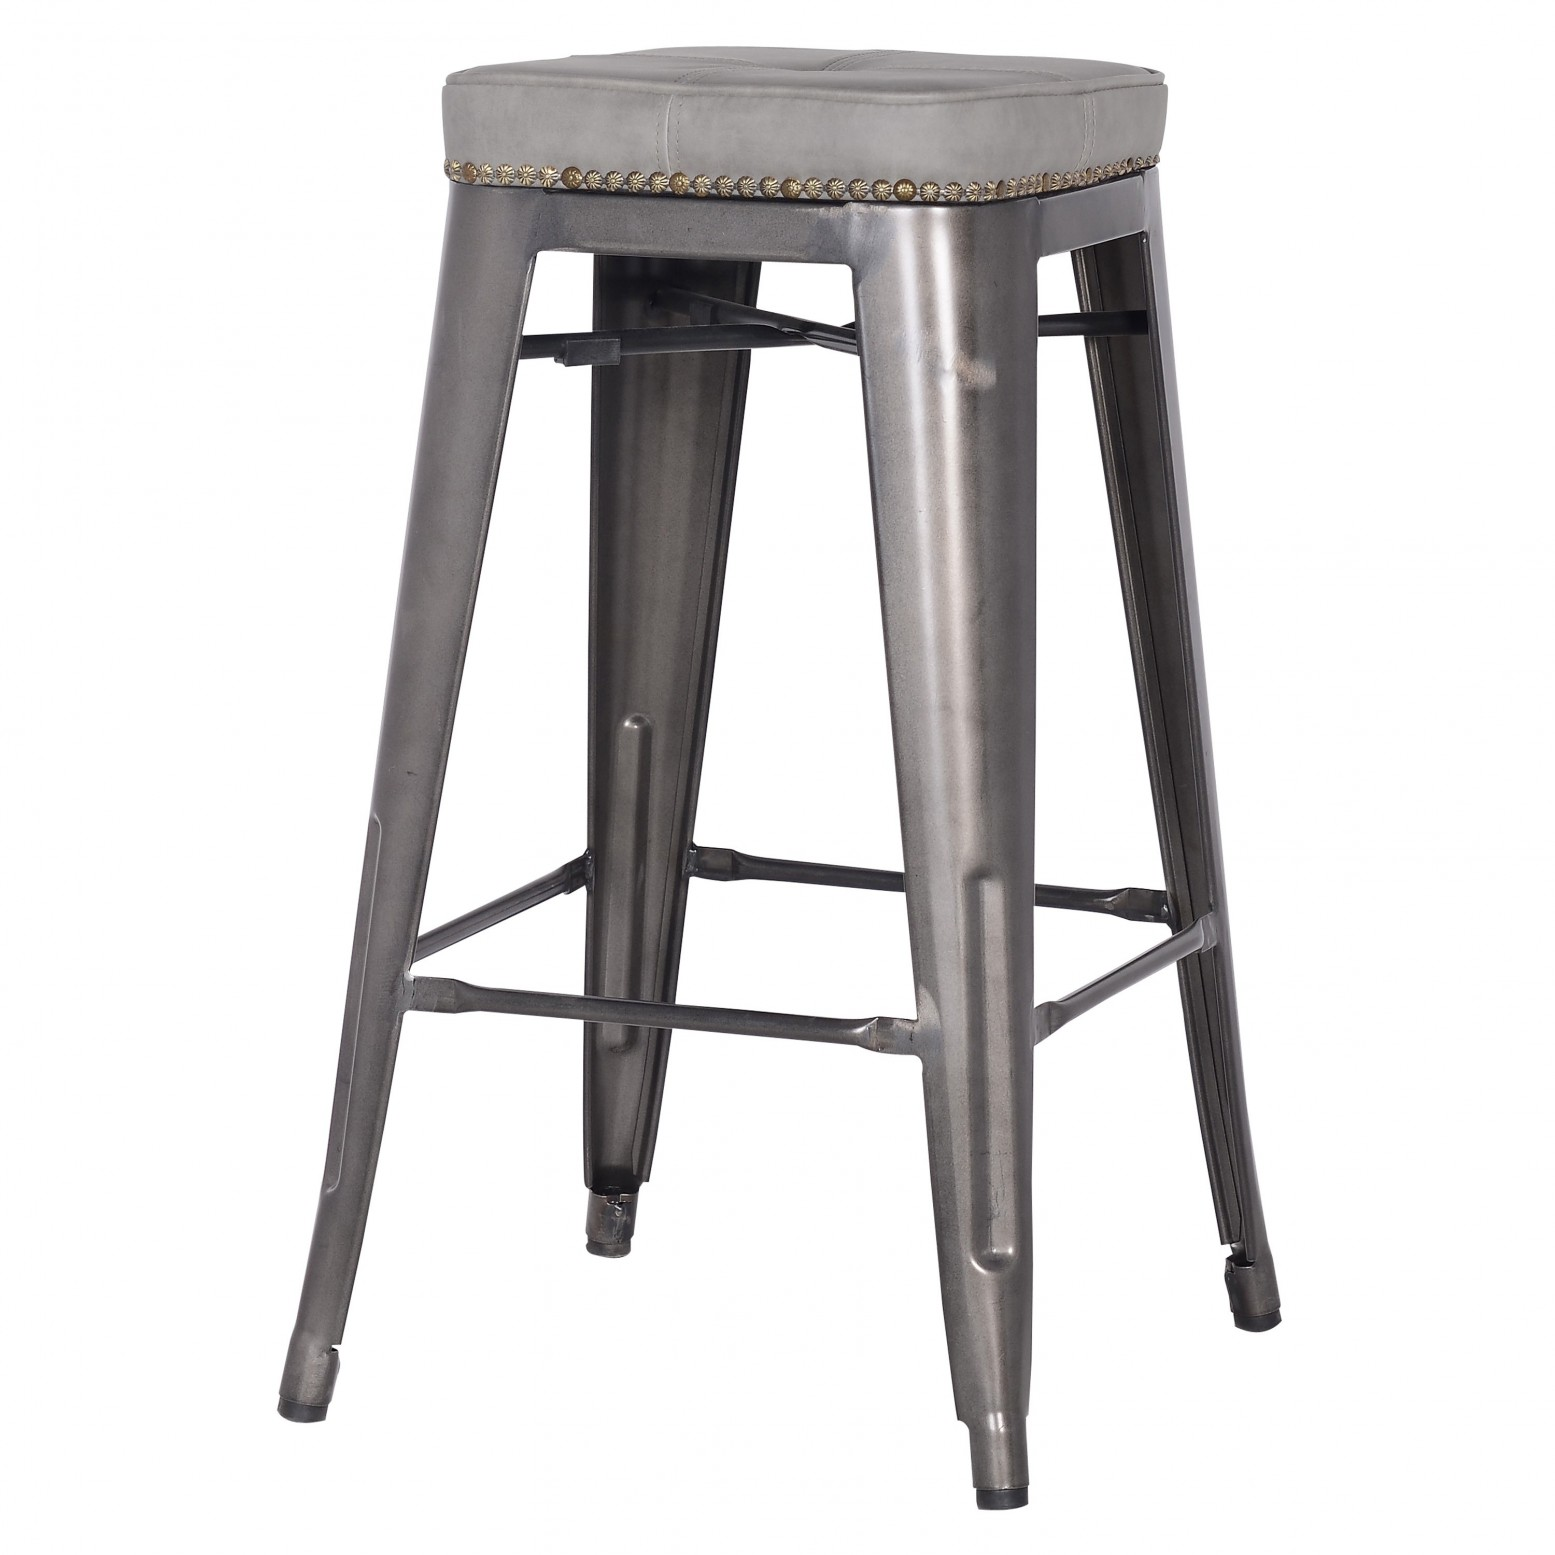 Pleasant Metropolis Kd Pu Metal Backless Counter Stool Vintage Mist Gray Caraccident5 Cool Chair Designs And Ideas Caraccident5Info